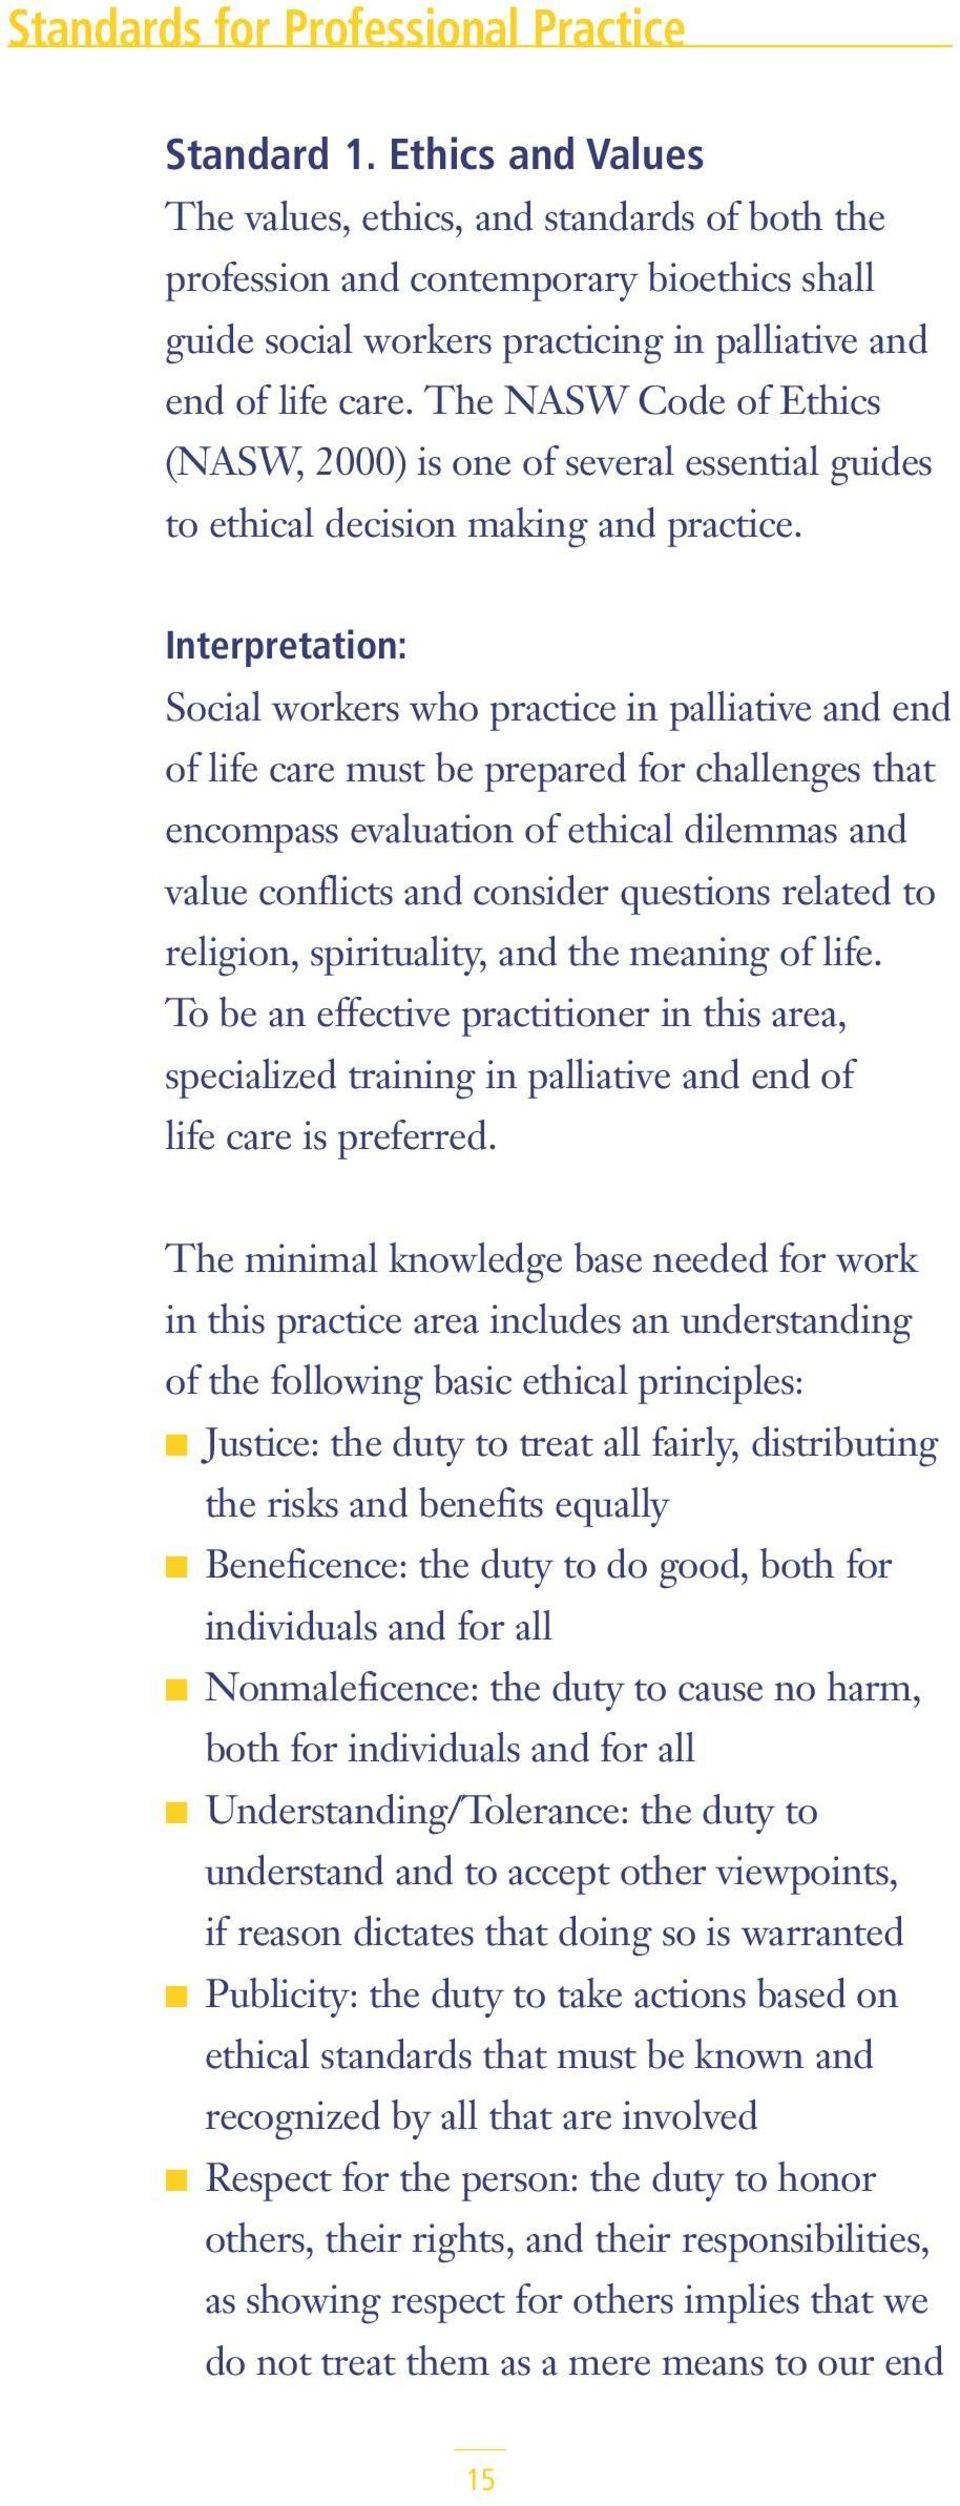 The NASW Code of Ethics (NASW, 2000) is one of several essential guides to ethical decision making and practice.